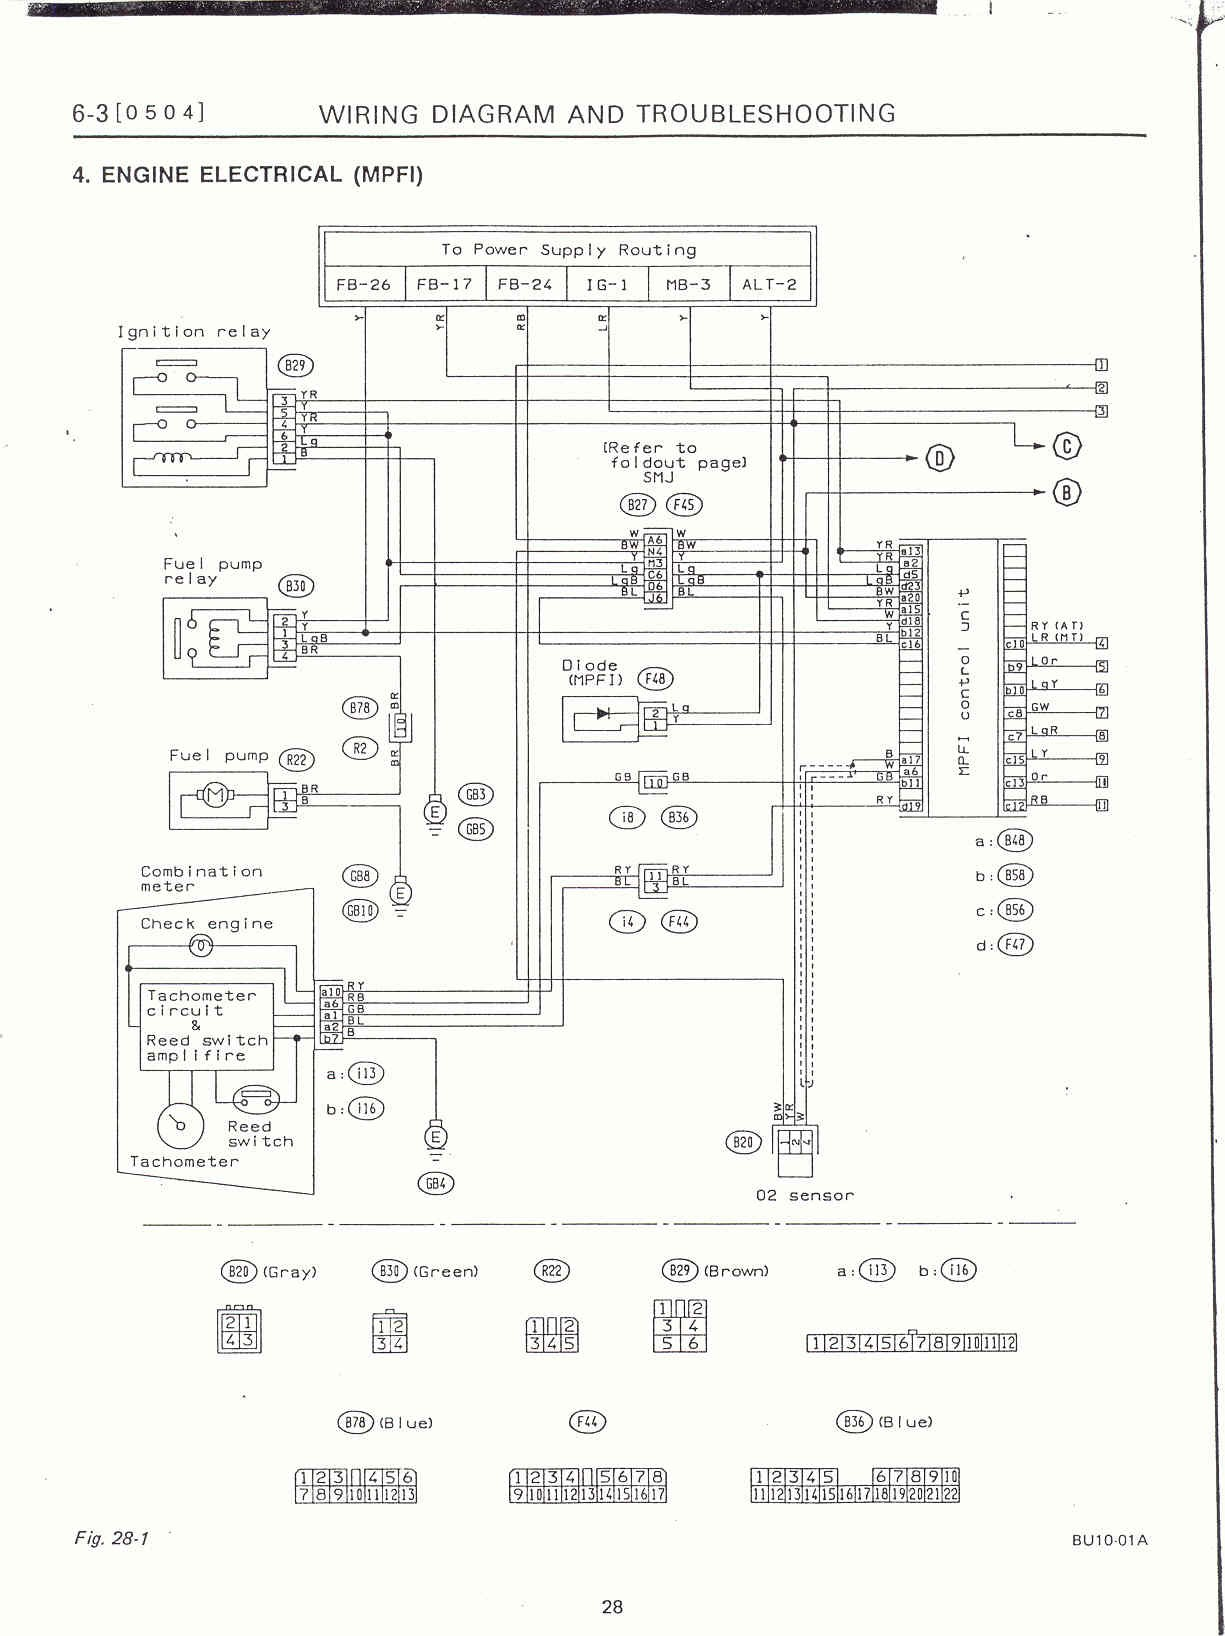 [DIAGRAM] Subaru Impreza 2018 Wiring Diagram Transmission